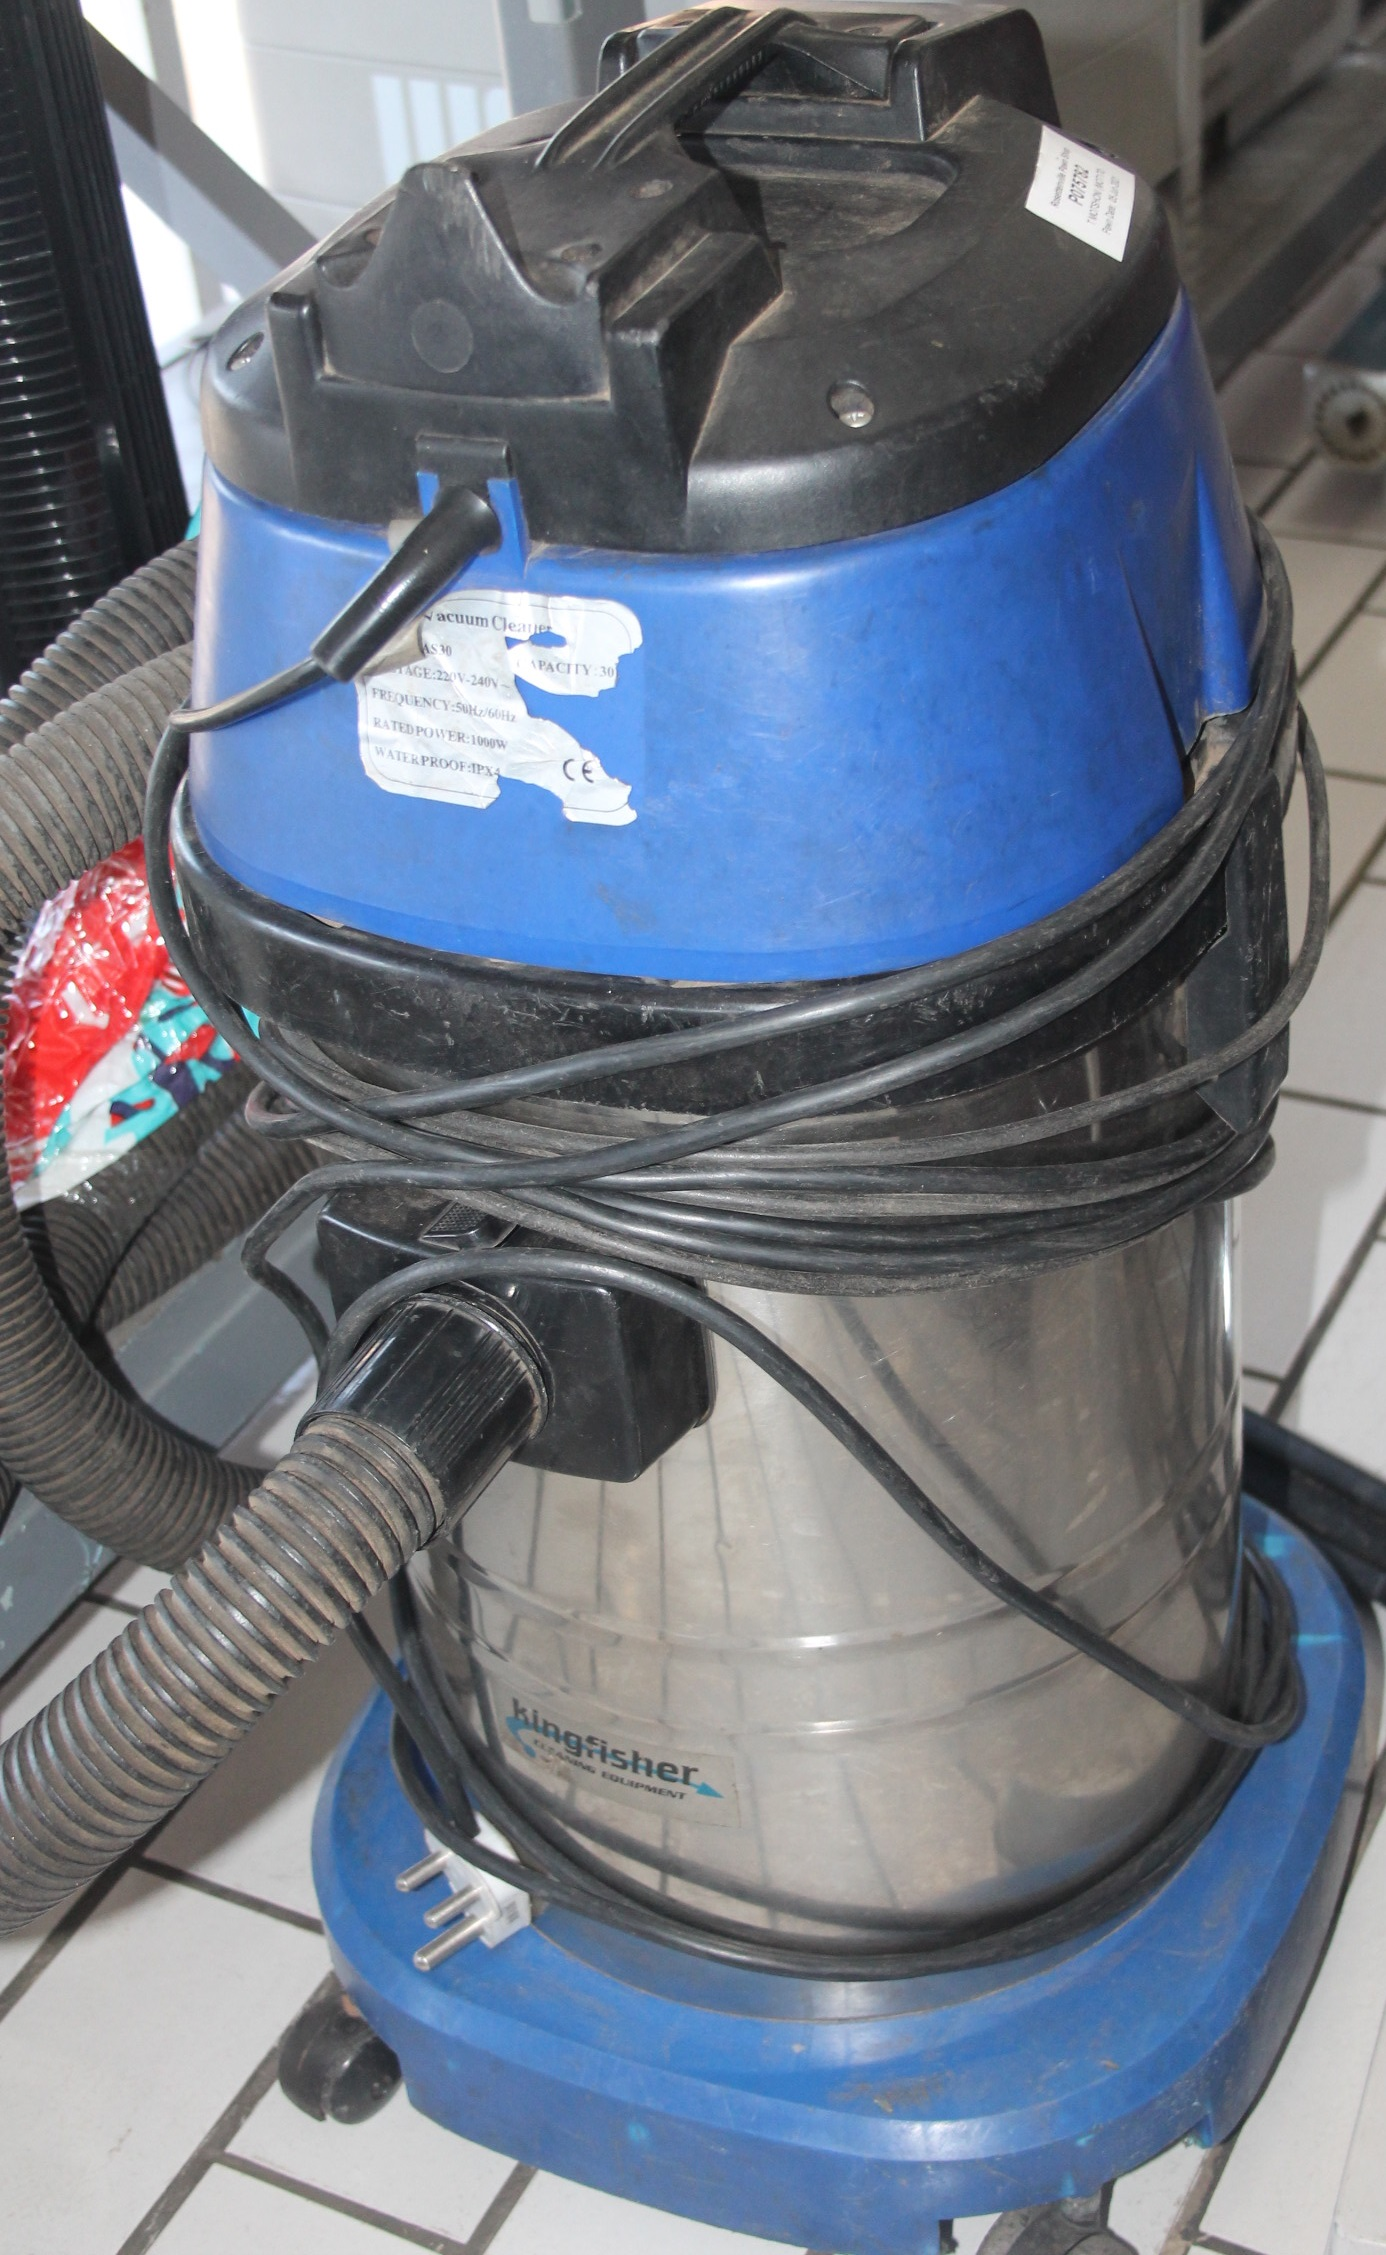 Kingfisher 30 litre wet and dry vacuum cleaner S045677A #Rosettenvillepawnshop